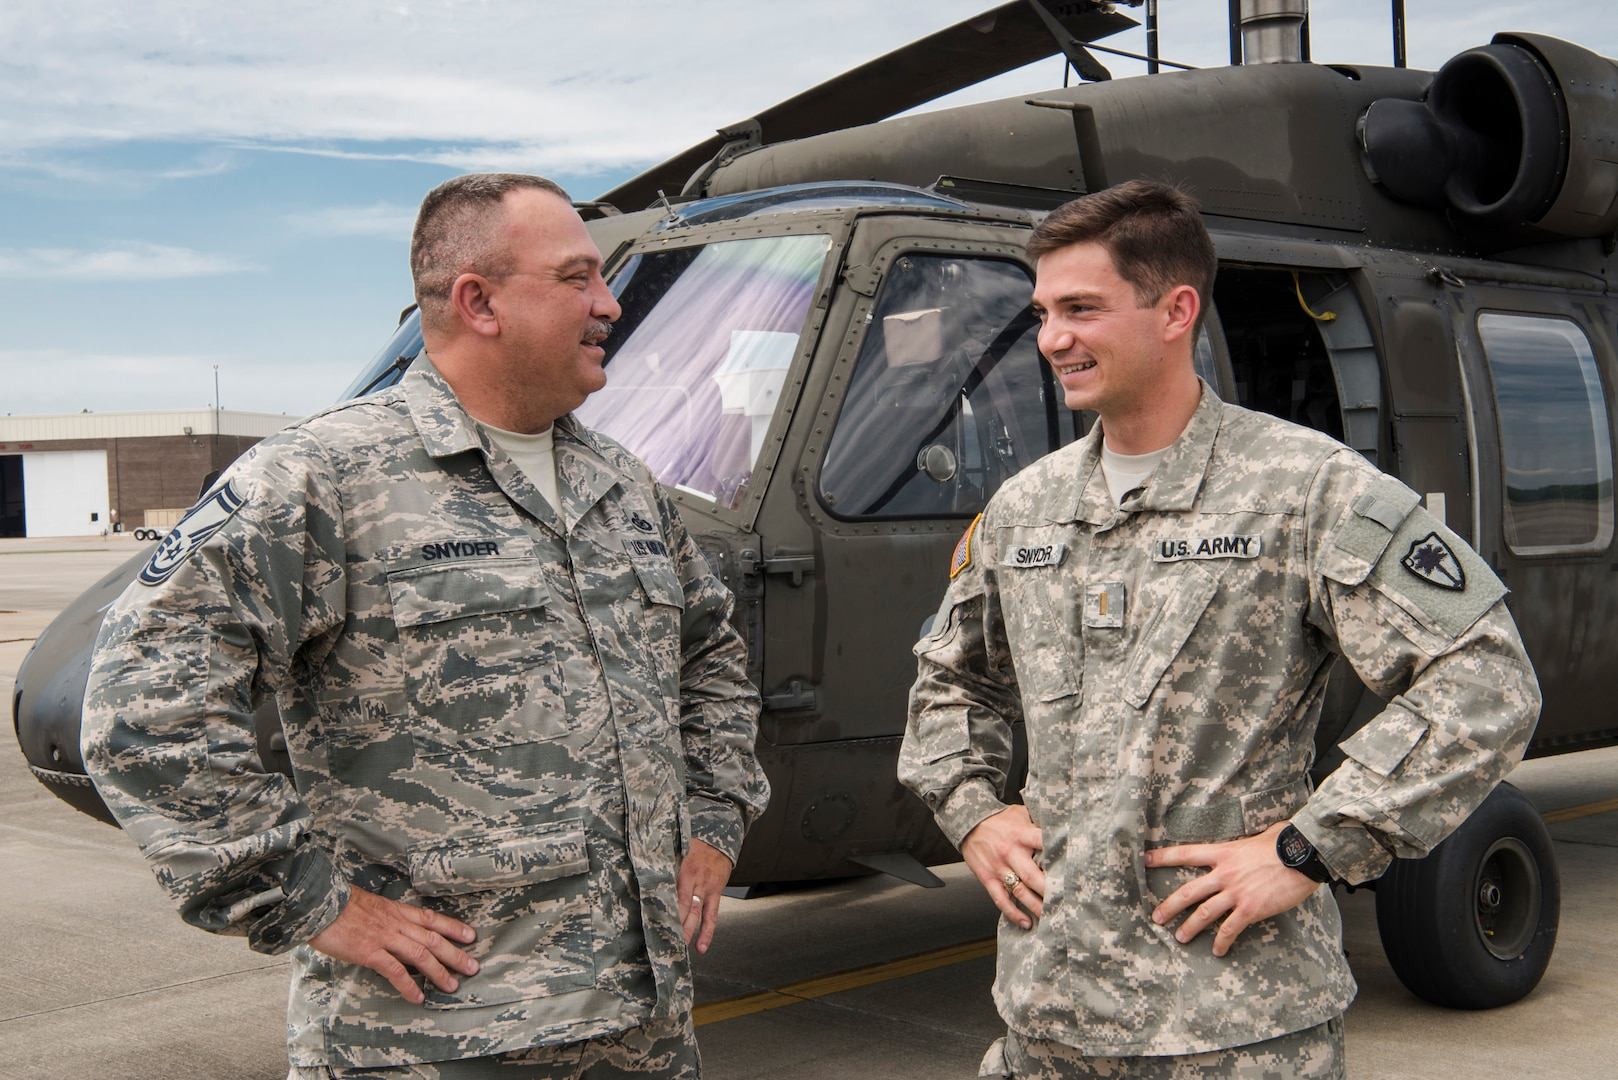 U.S. Army 2nd Lt. Michael Snyder with A Co. 1-111th General Support Aviation Battalion and U.S. Air Force Senior Master Sgt. Edward Snyder with the 169th Fighter Wing pose for a photograph at McEntire Joint National Guard Base in Eastover, South Carolina, June 13, 2017.